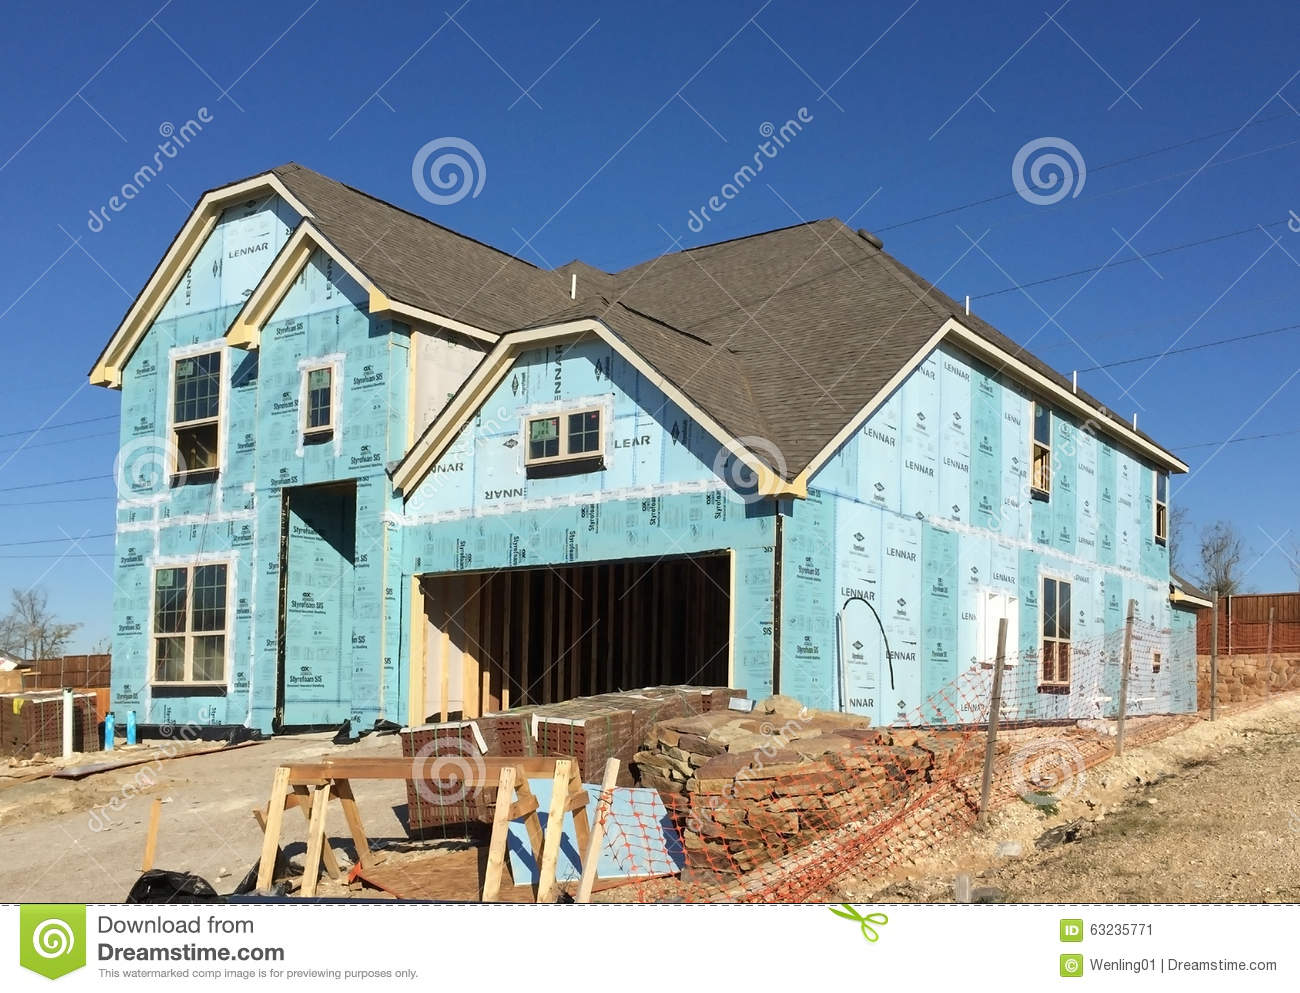 Building A New House Cartoon : Old lumber rooms stock photo cartoondealer